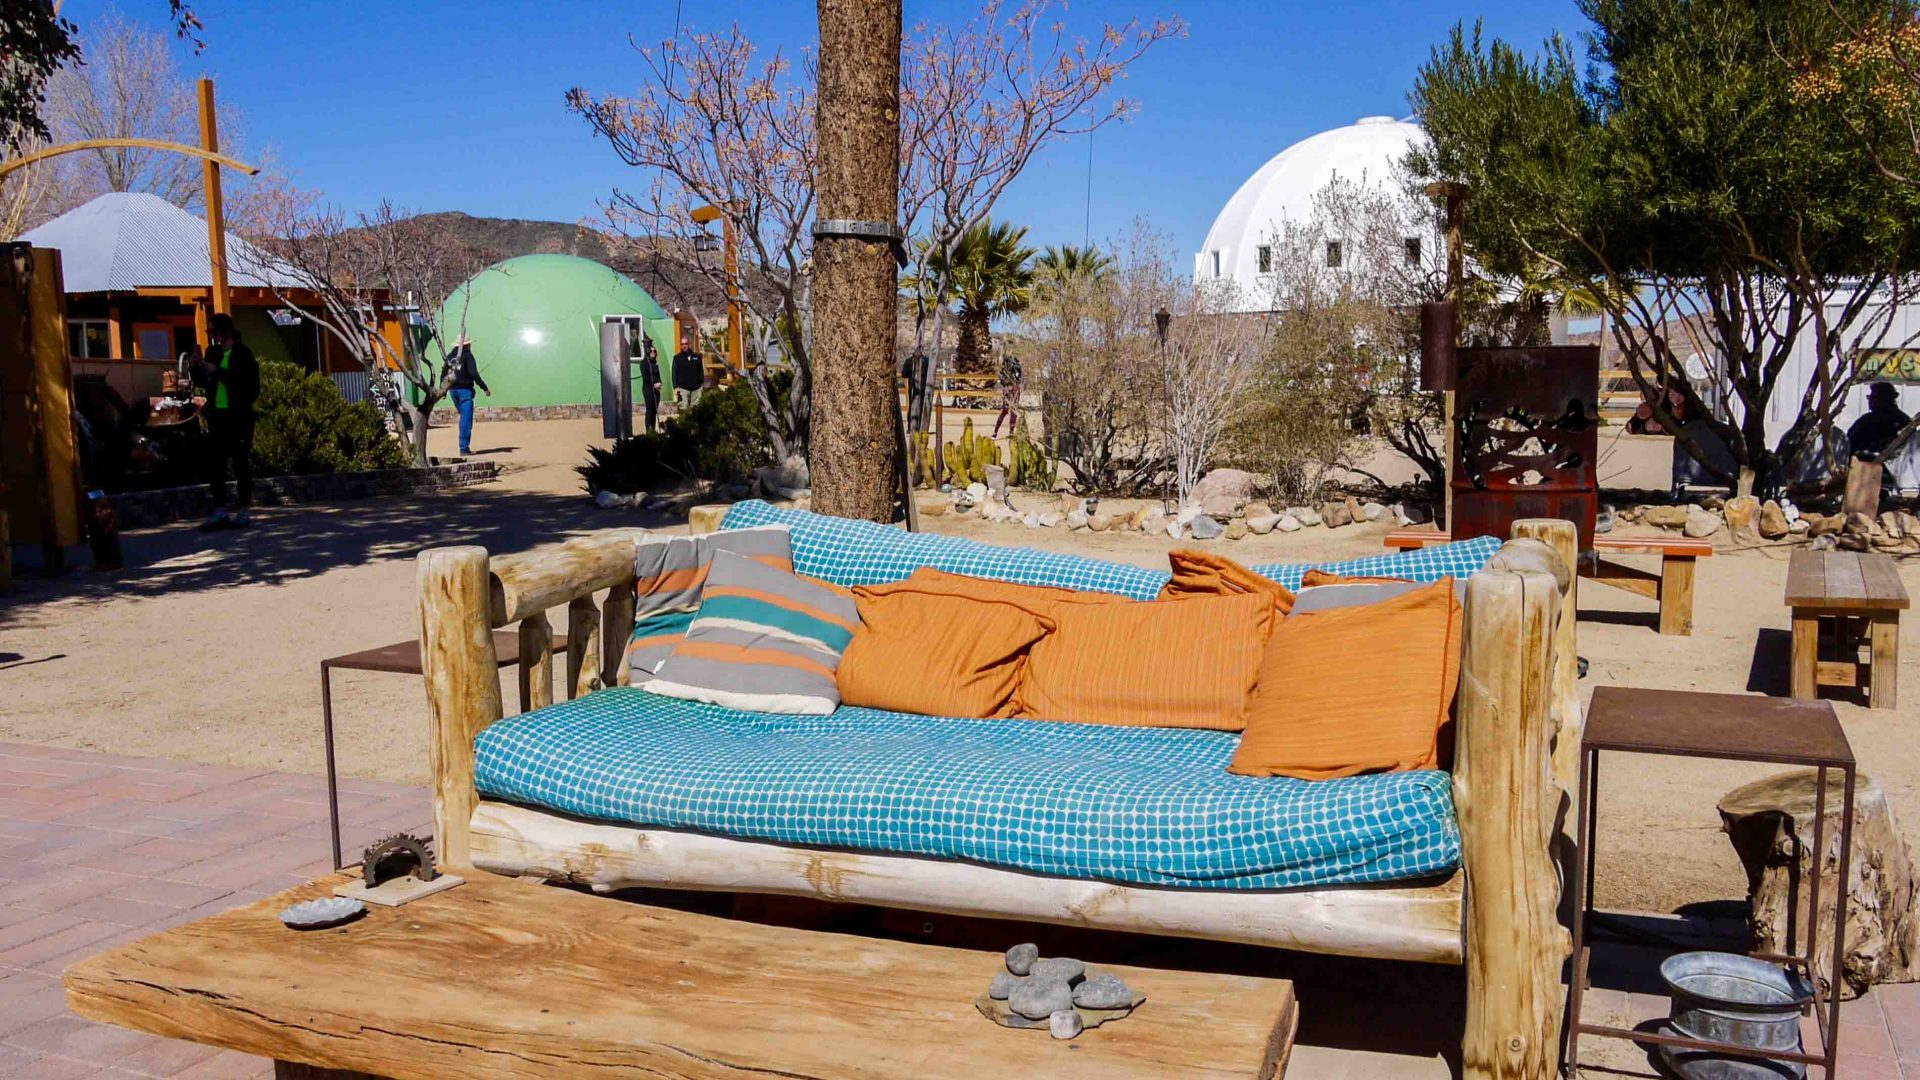 Plenty of places where visitors can relax and take in the mystical atmosphere surrounding the Integratron in the Mojave Desert.